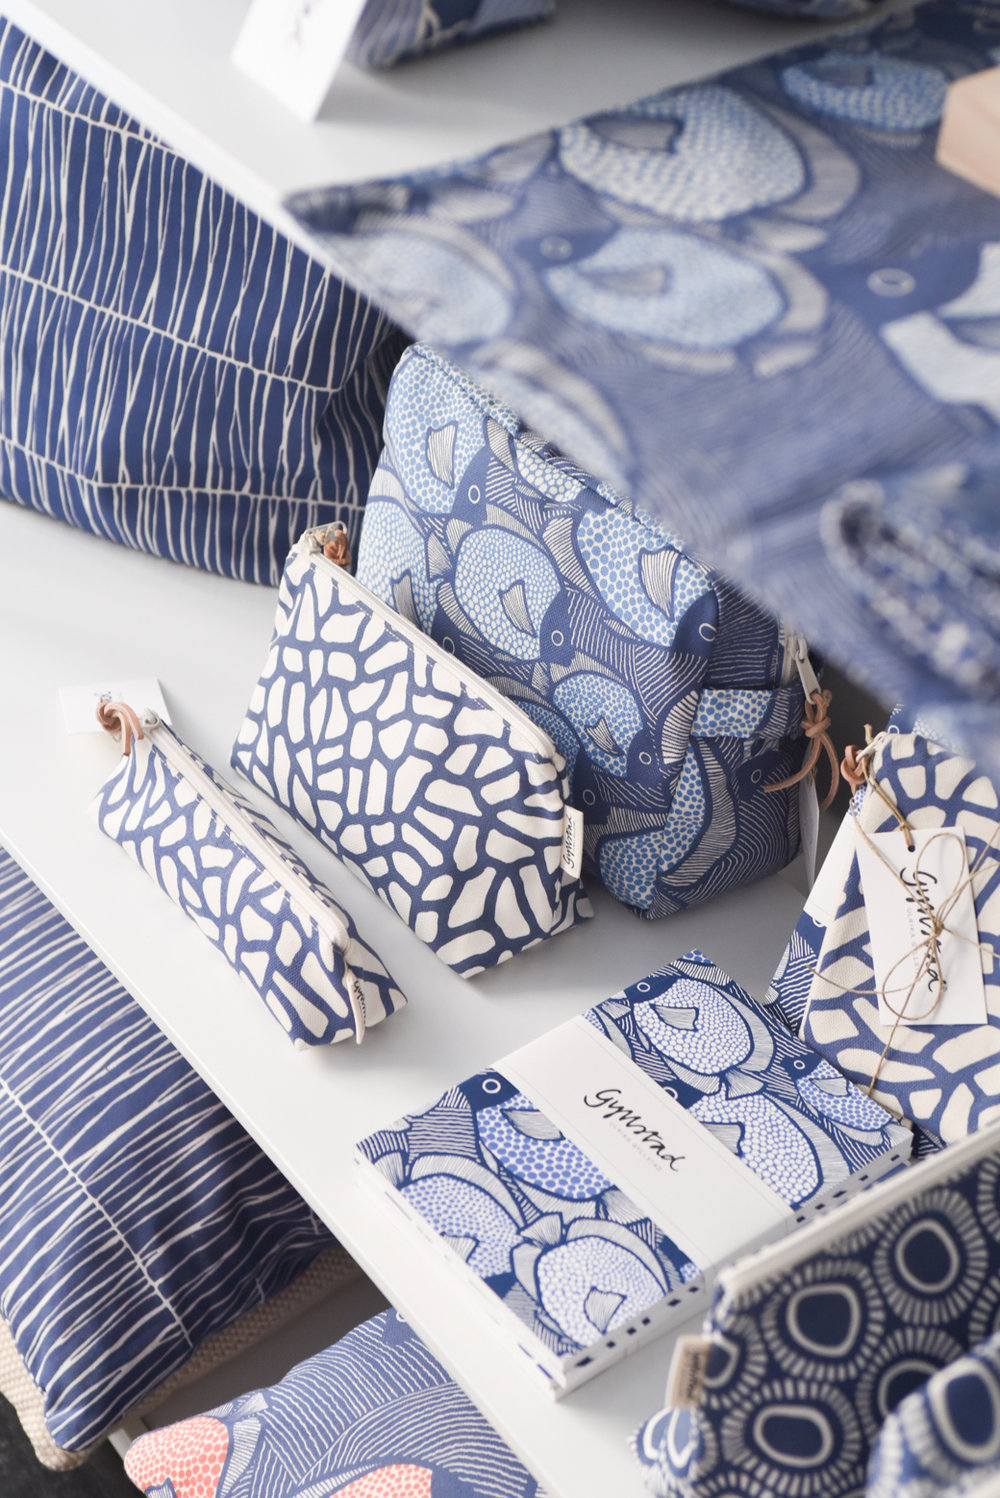 Tour The Studio of Swedish Textile Designer Ulrika Gyllstad